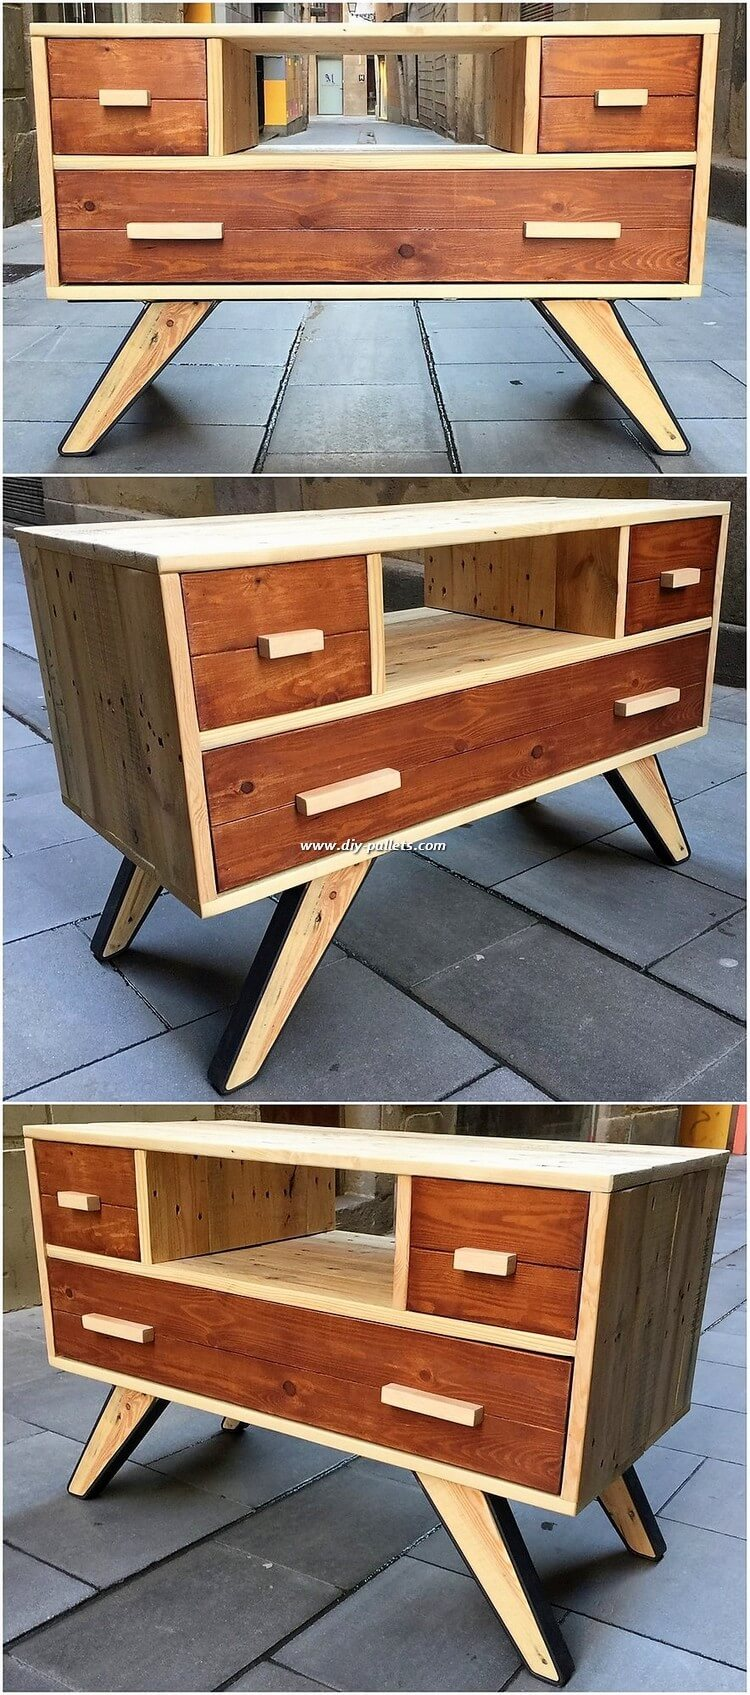 Pallet TV Stand or Cabient